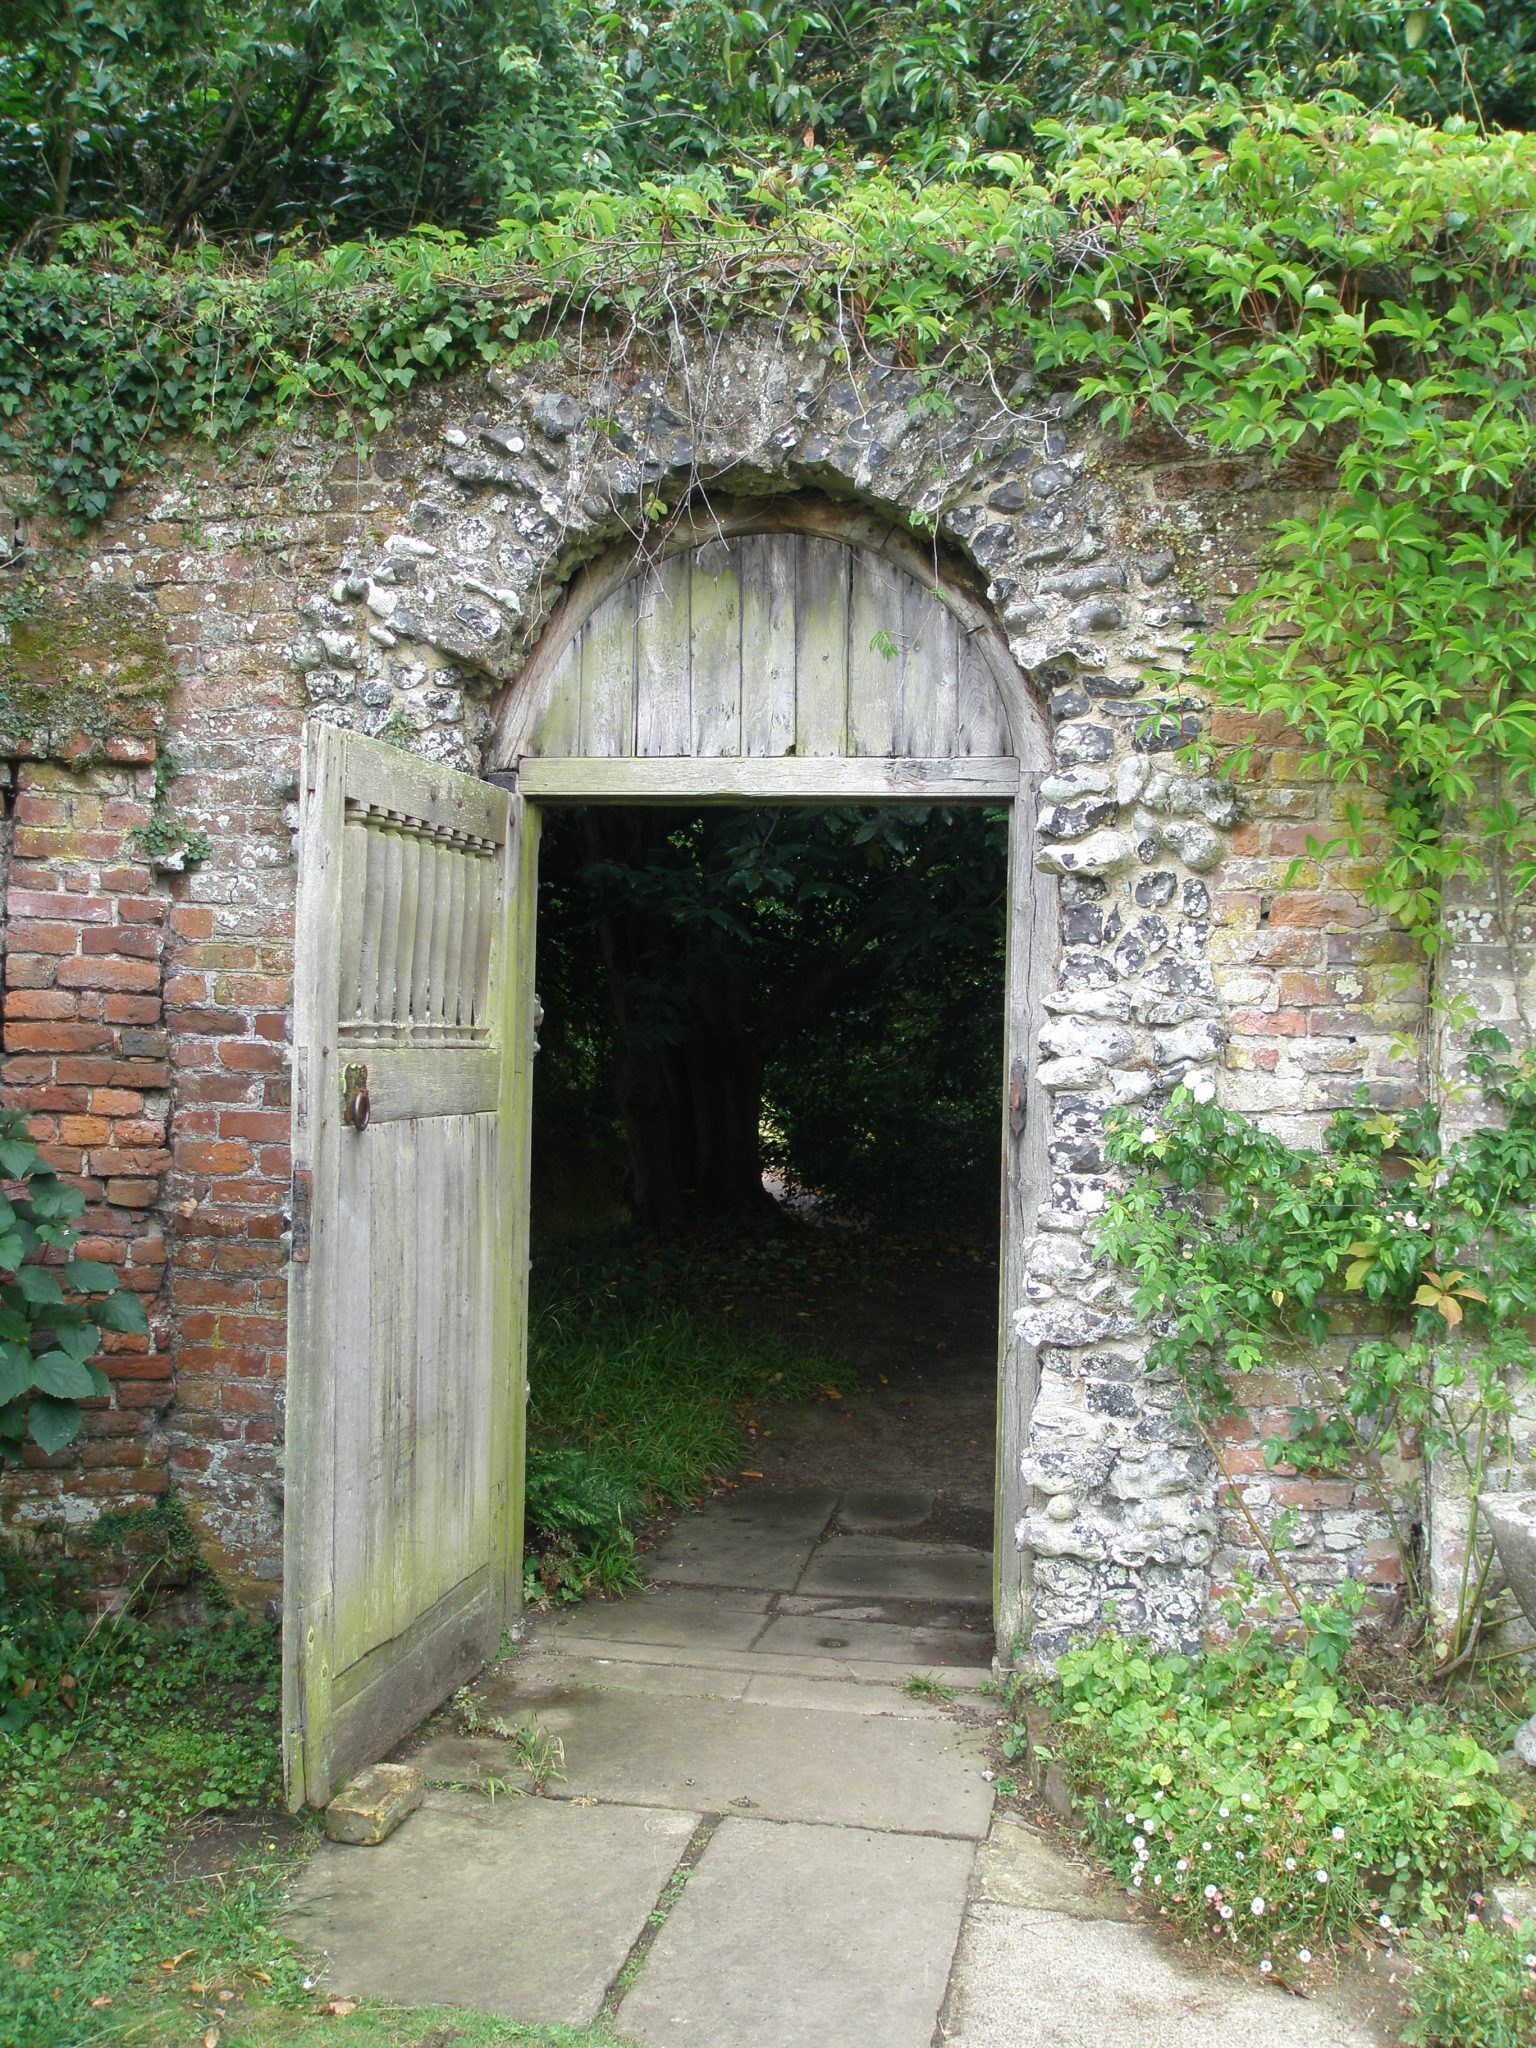 Exiting the Walled Garden through yet another split-flint decorated archway, we headed into the shadows of the Arboretum, and the Woodland Garden.